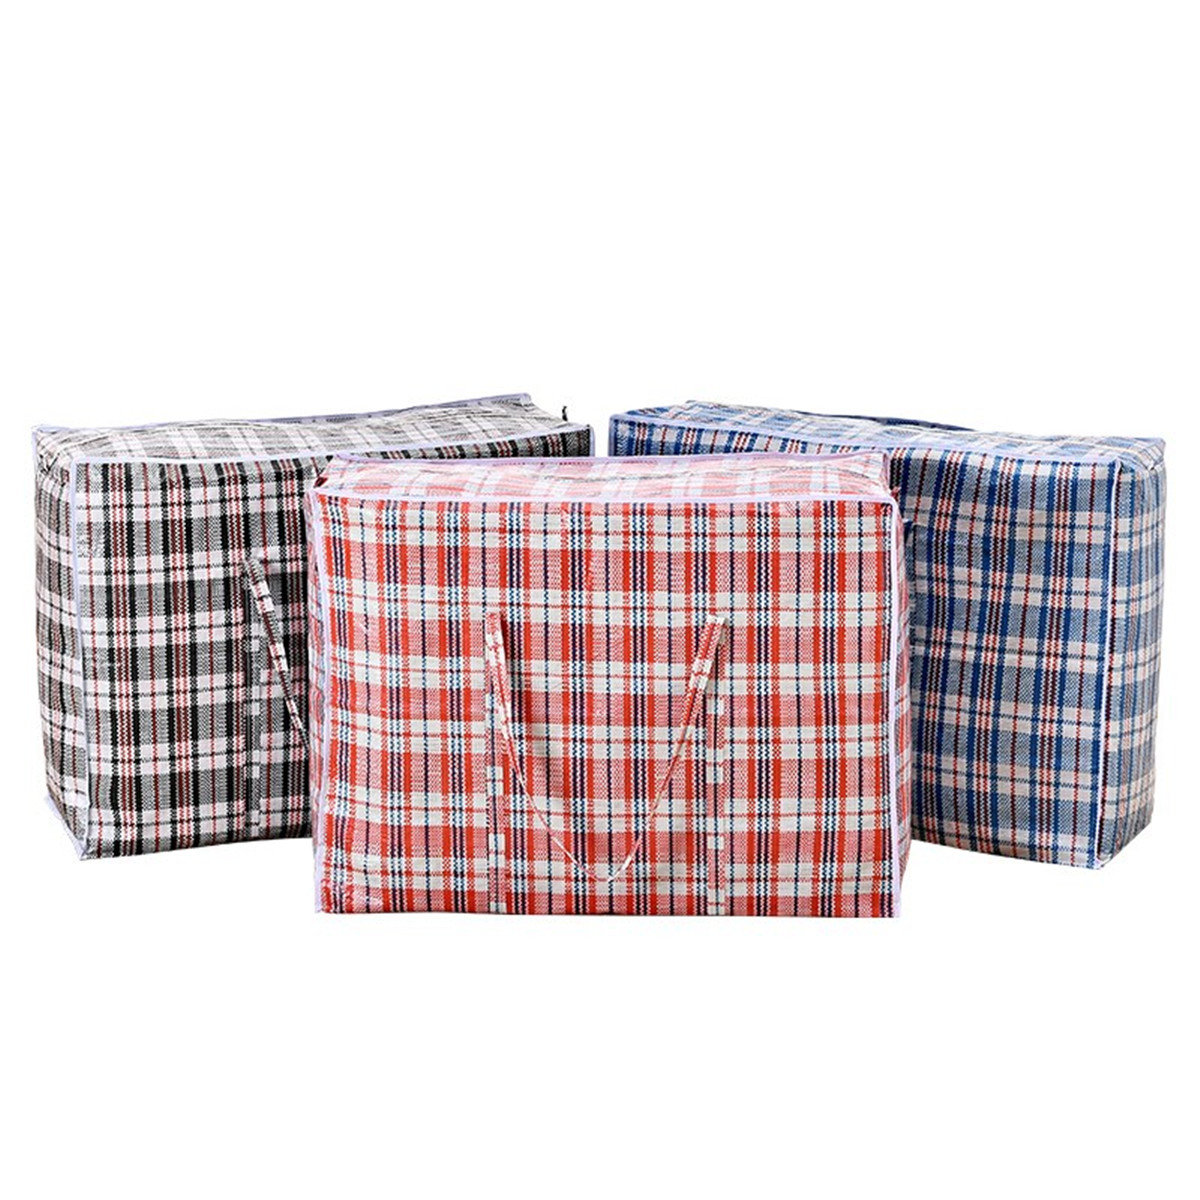 606adc416874 6PCS Extra Large Storage Bags Packing Bag Clothes Moving Travel Small  Medium Bulk